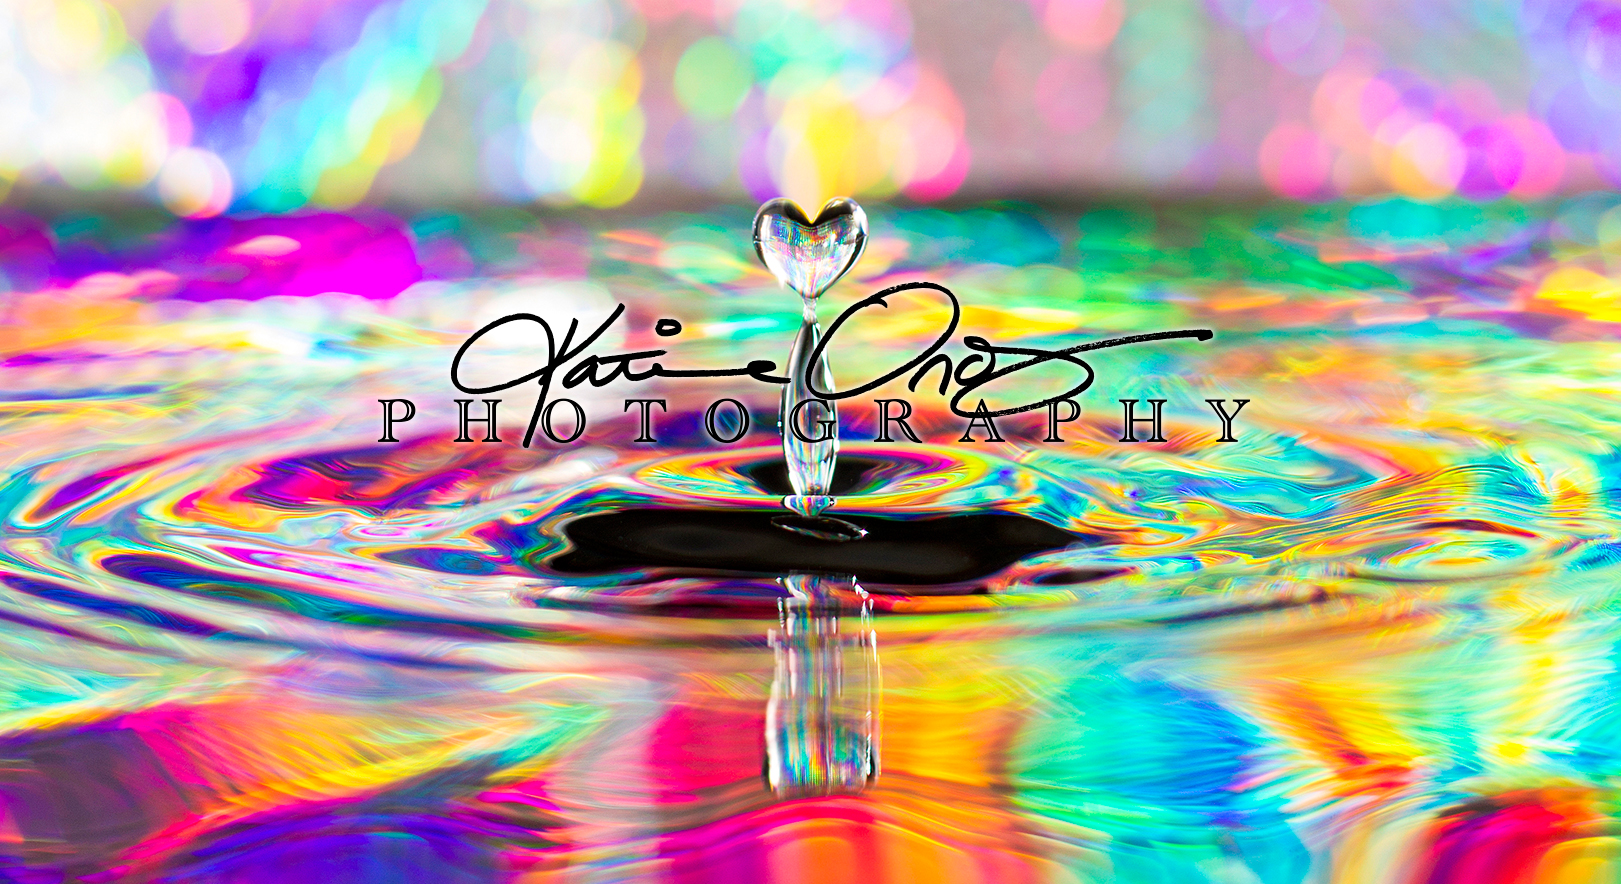 Katie-Oros-Photography-Splash-Page.jpg